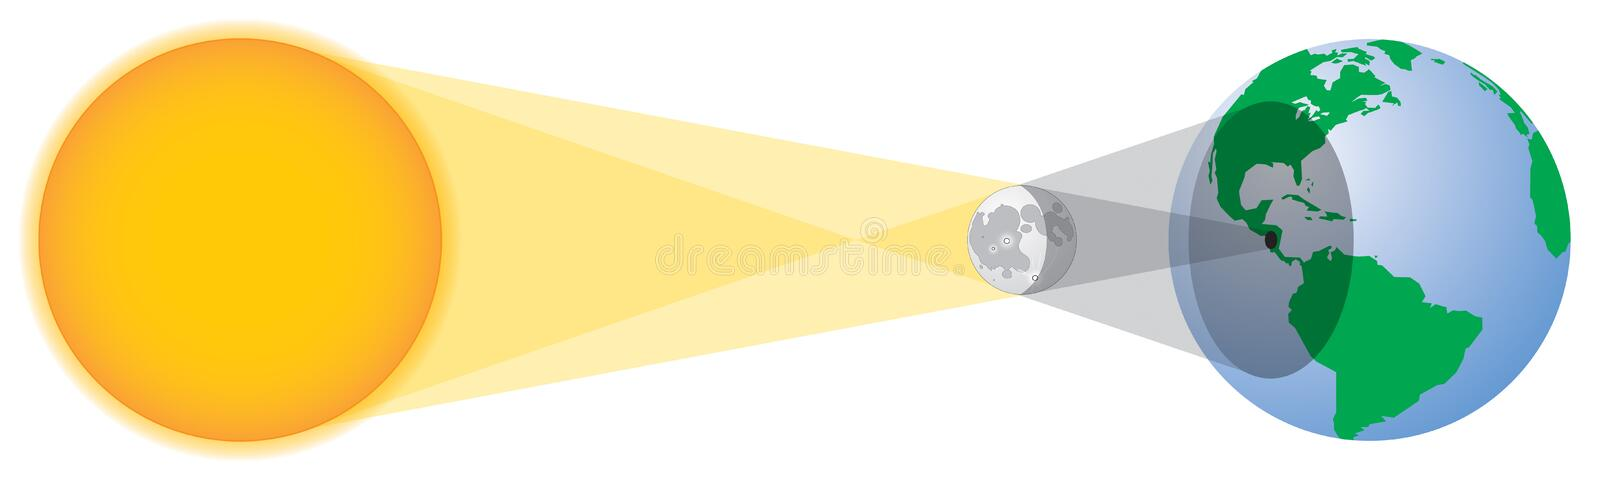 Solar eclipse geometry stock illustration